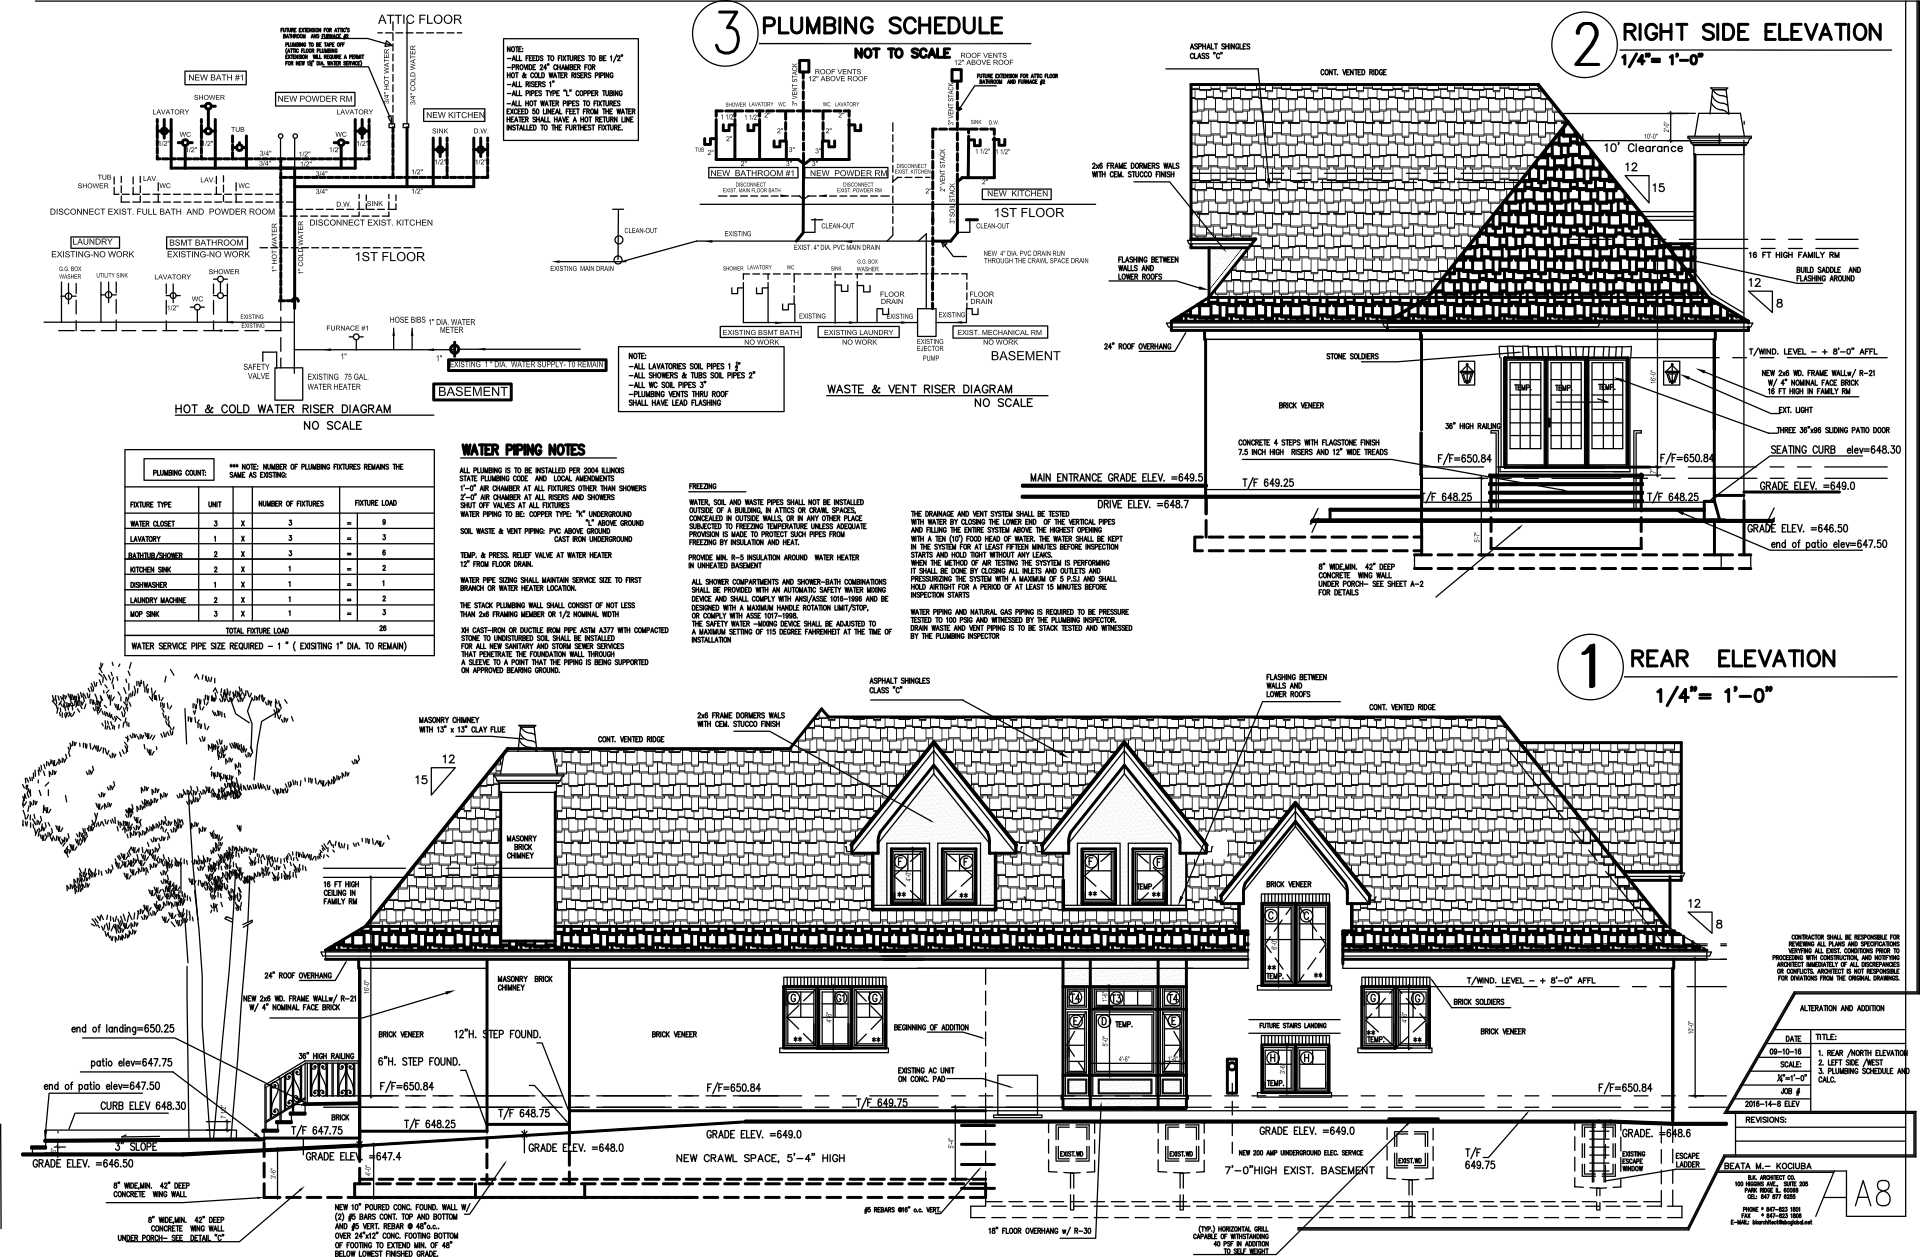 house-addition-glenview-by-greenleaf-developers-rear-and-right-elevation